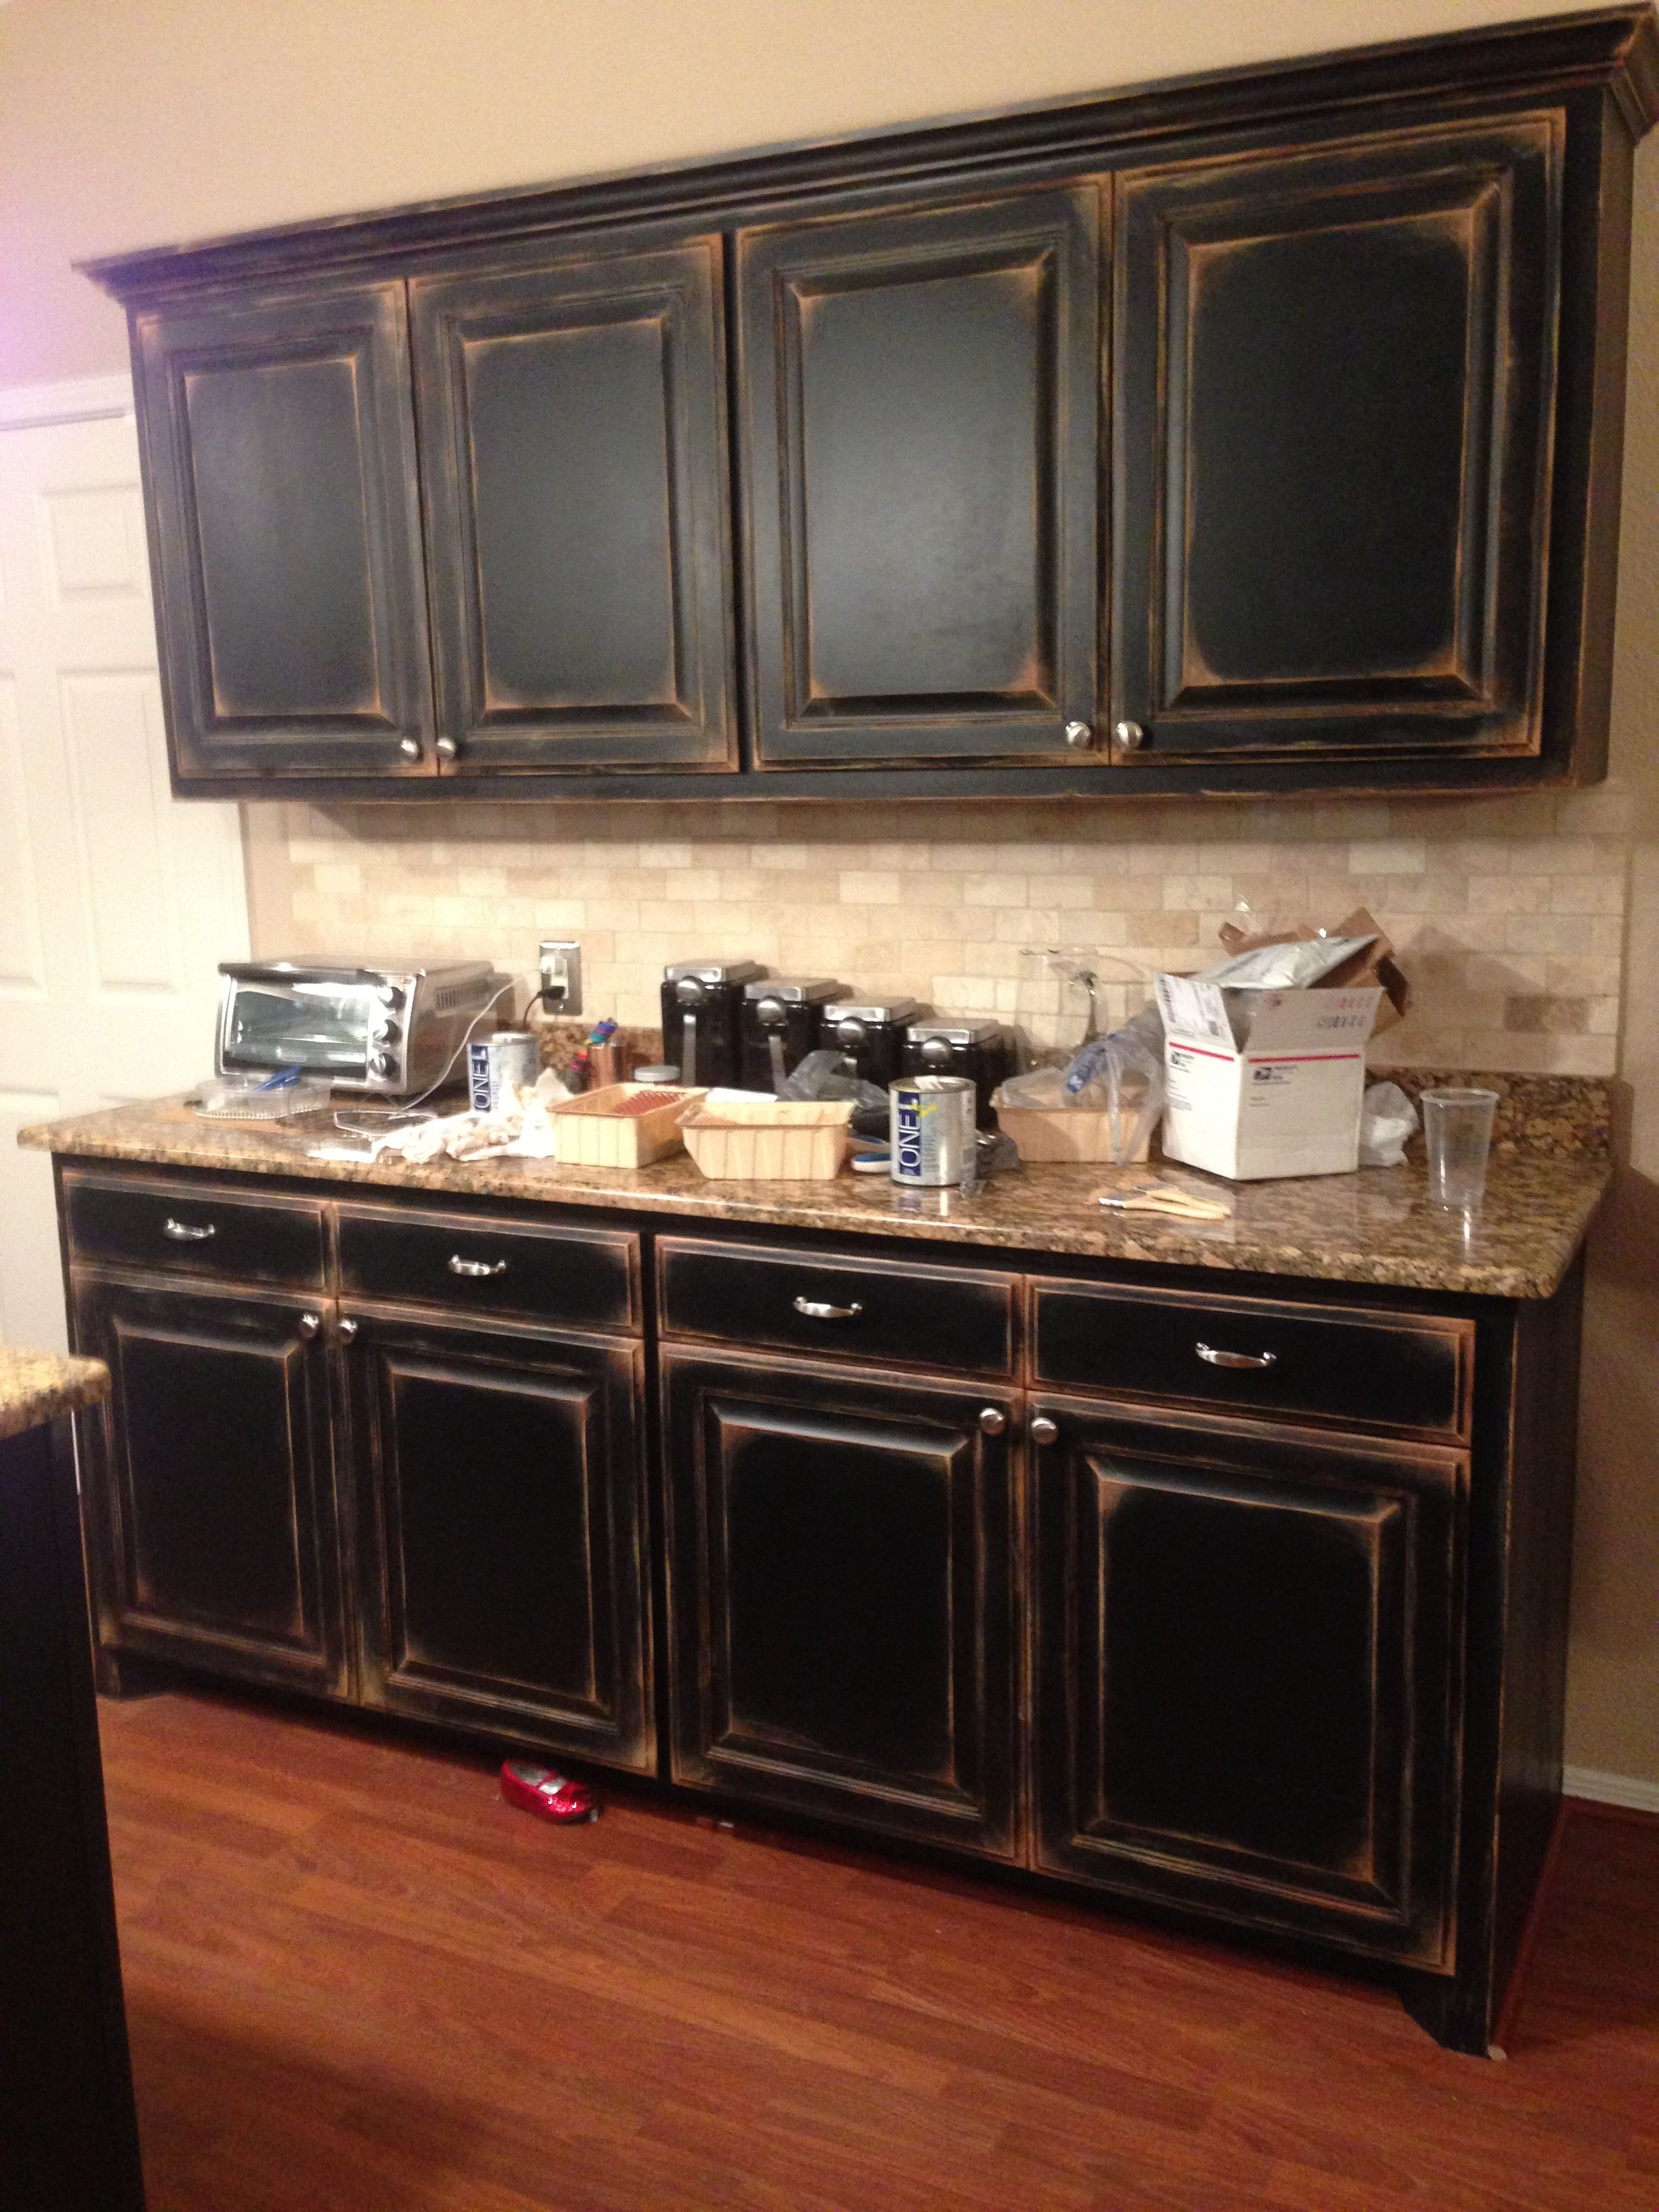 black cabinets kitchen. Black cabinets with faux distressing  Used 3 different colors of flat paint to create this